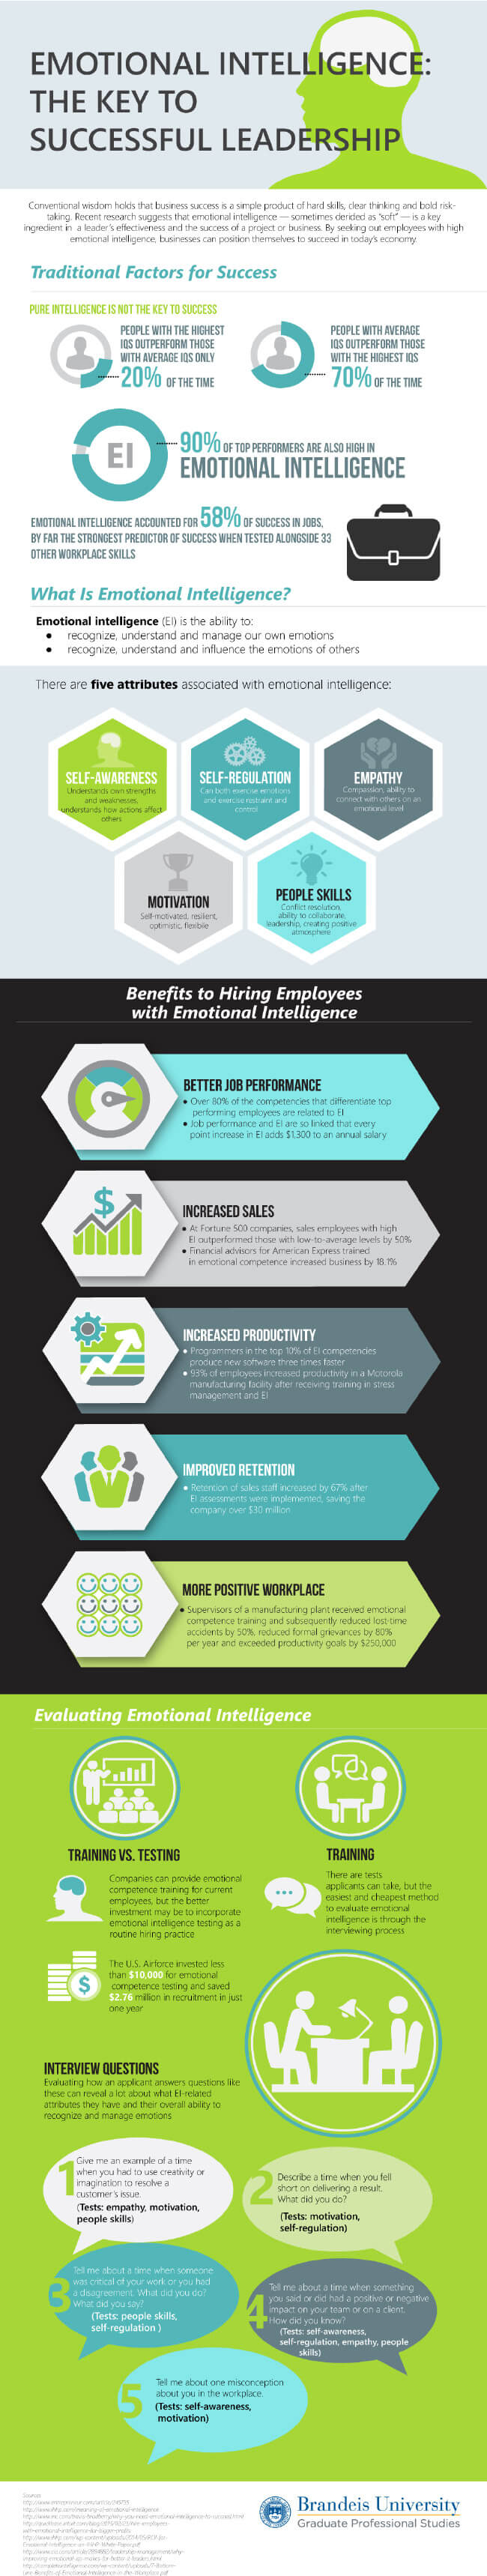 emotional intelligence 5 skills that will save your job from robots for now tipsographic main